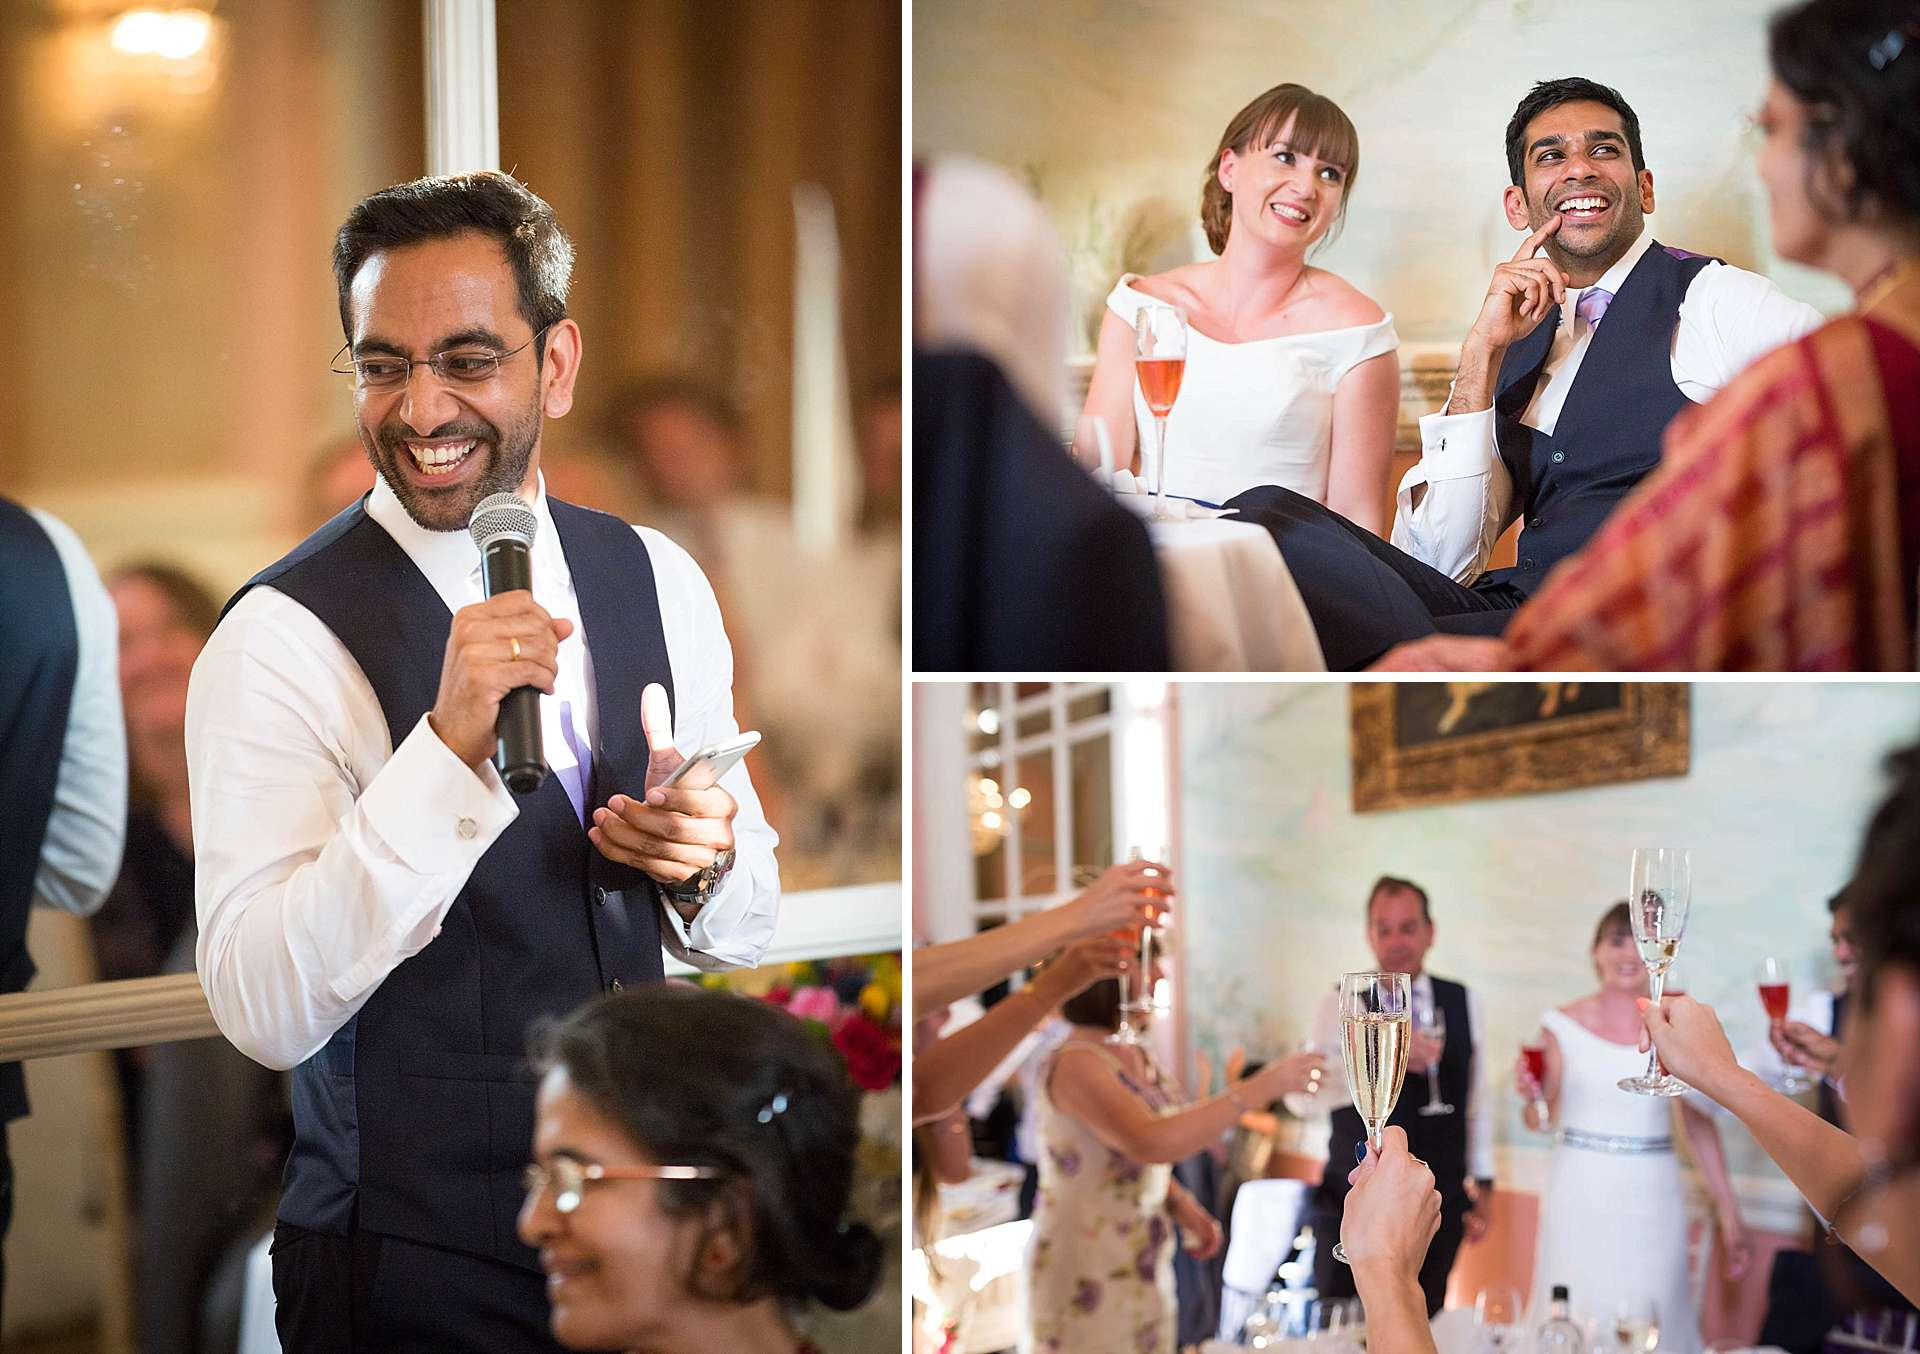 Wedding speeches at Danesfield House